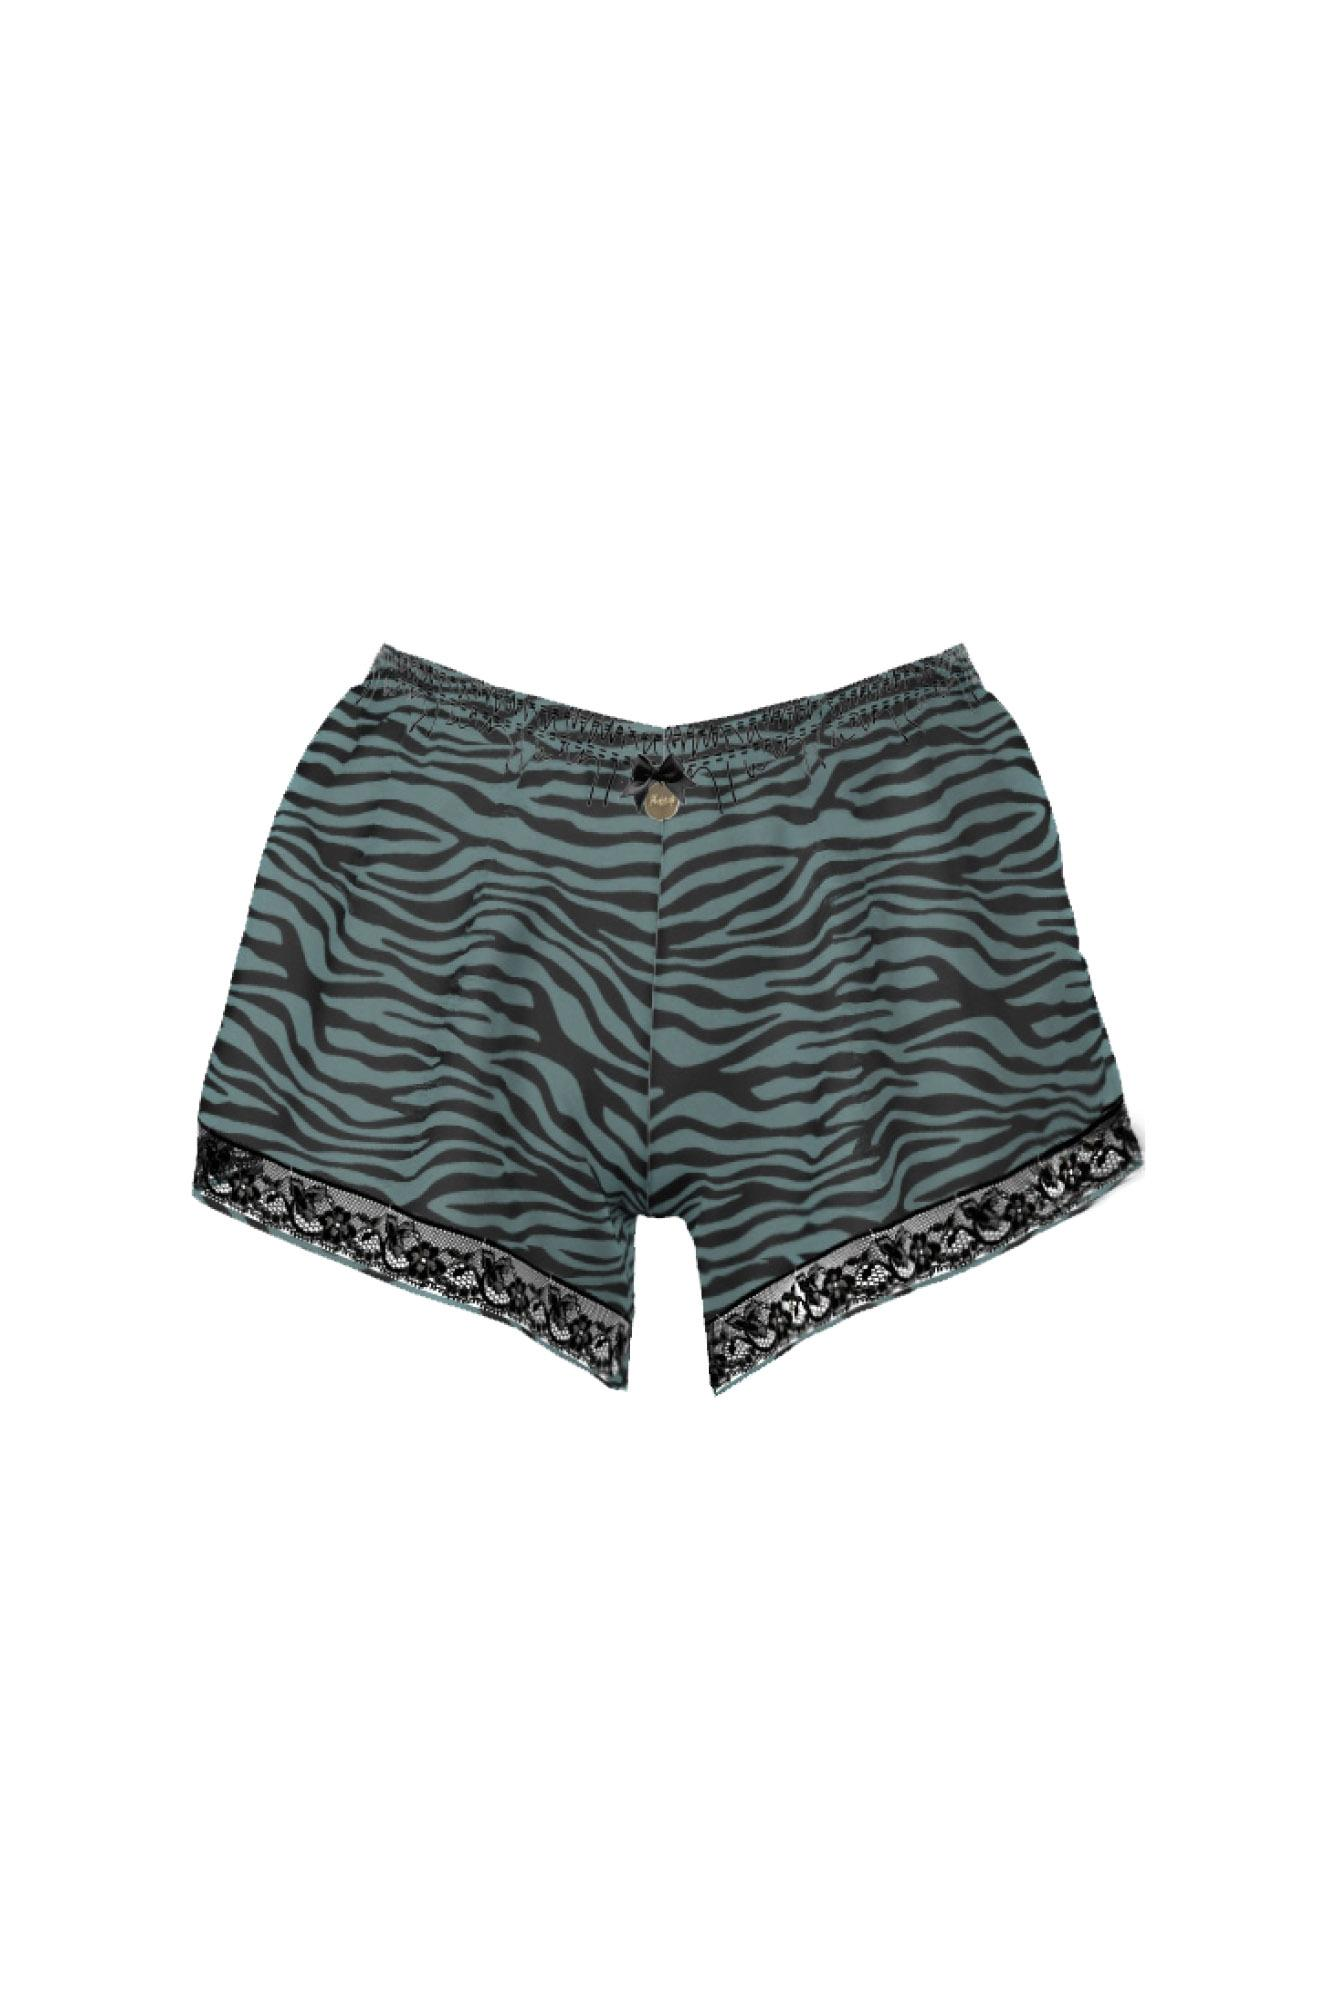 Women's Animal Print Shorts